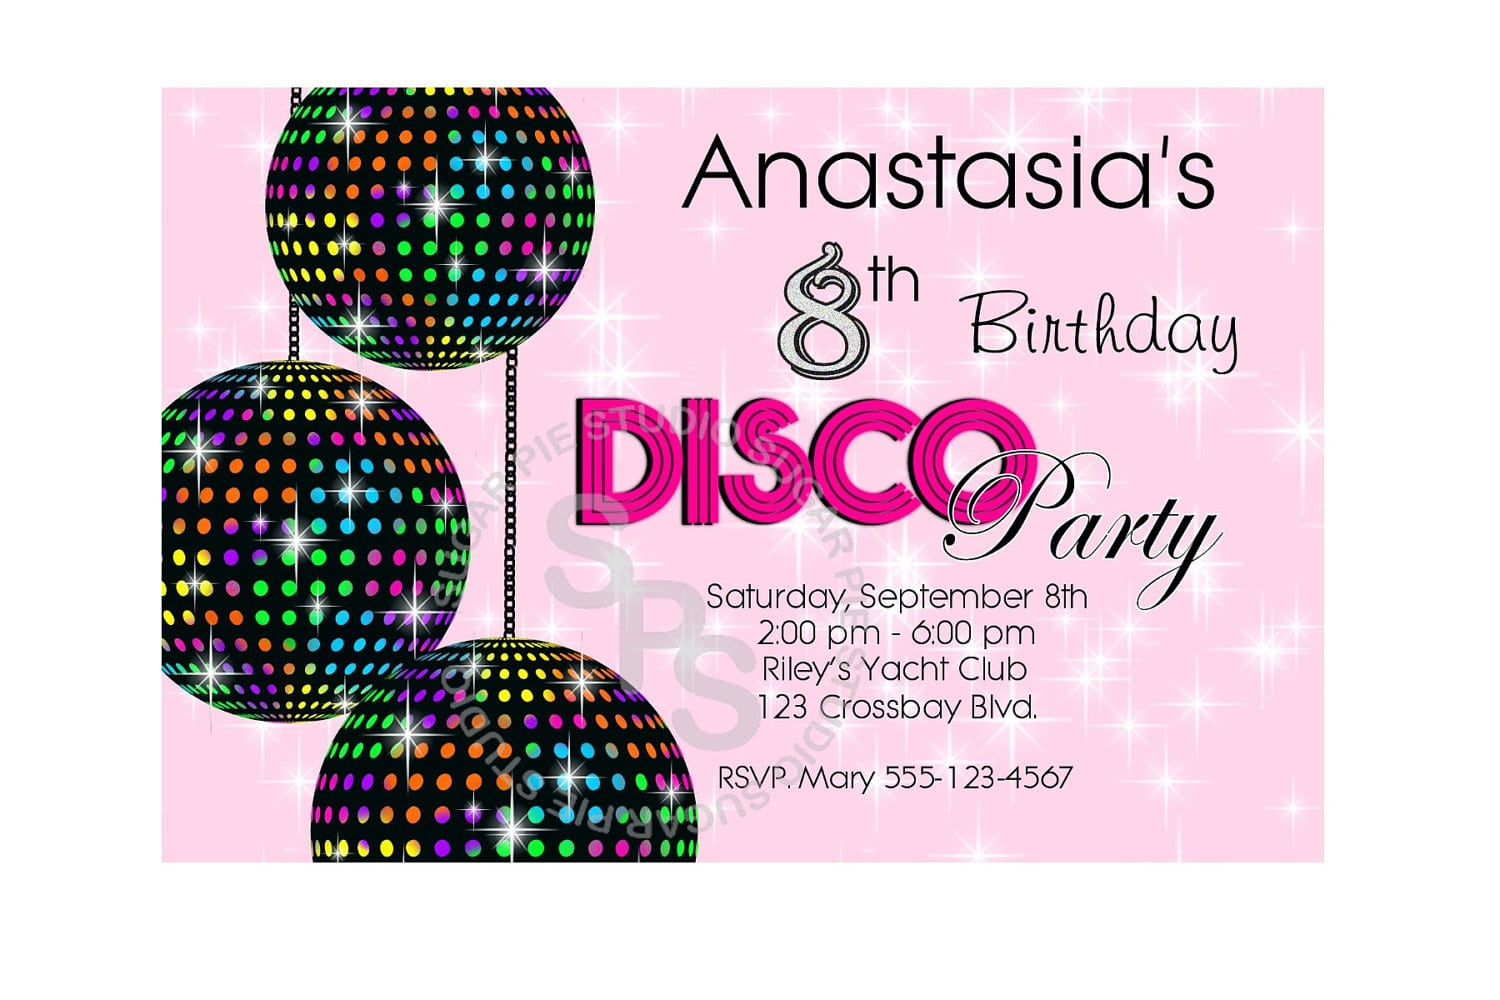 Office Party Invitation Template Mickey Mouse Invitations Templates - Party invitation template: dance party invitations templates